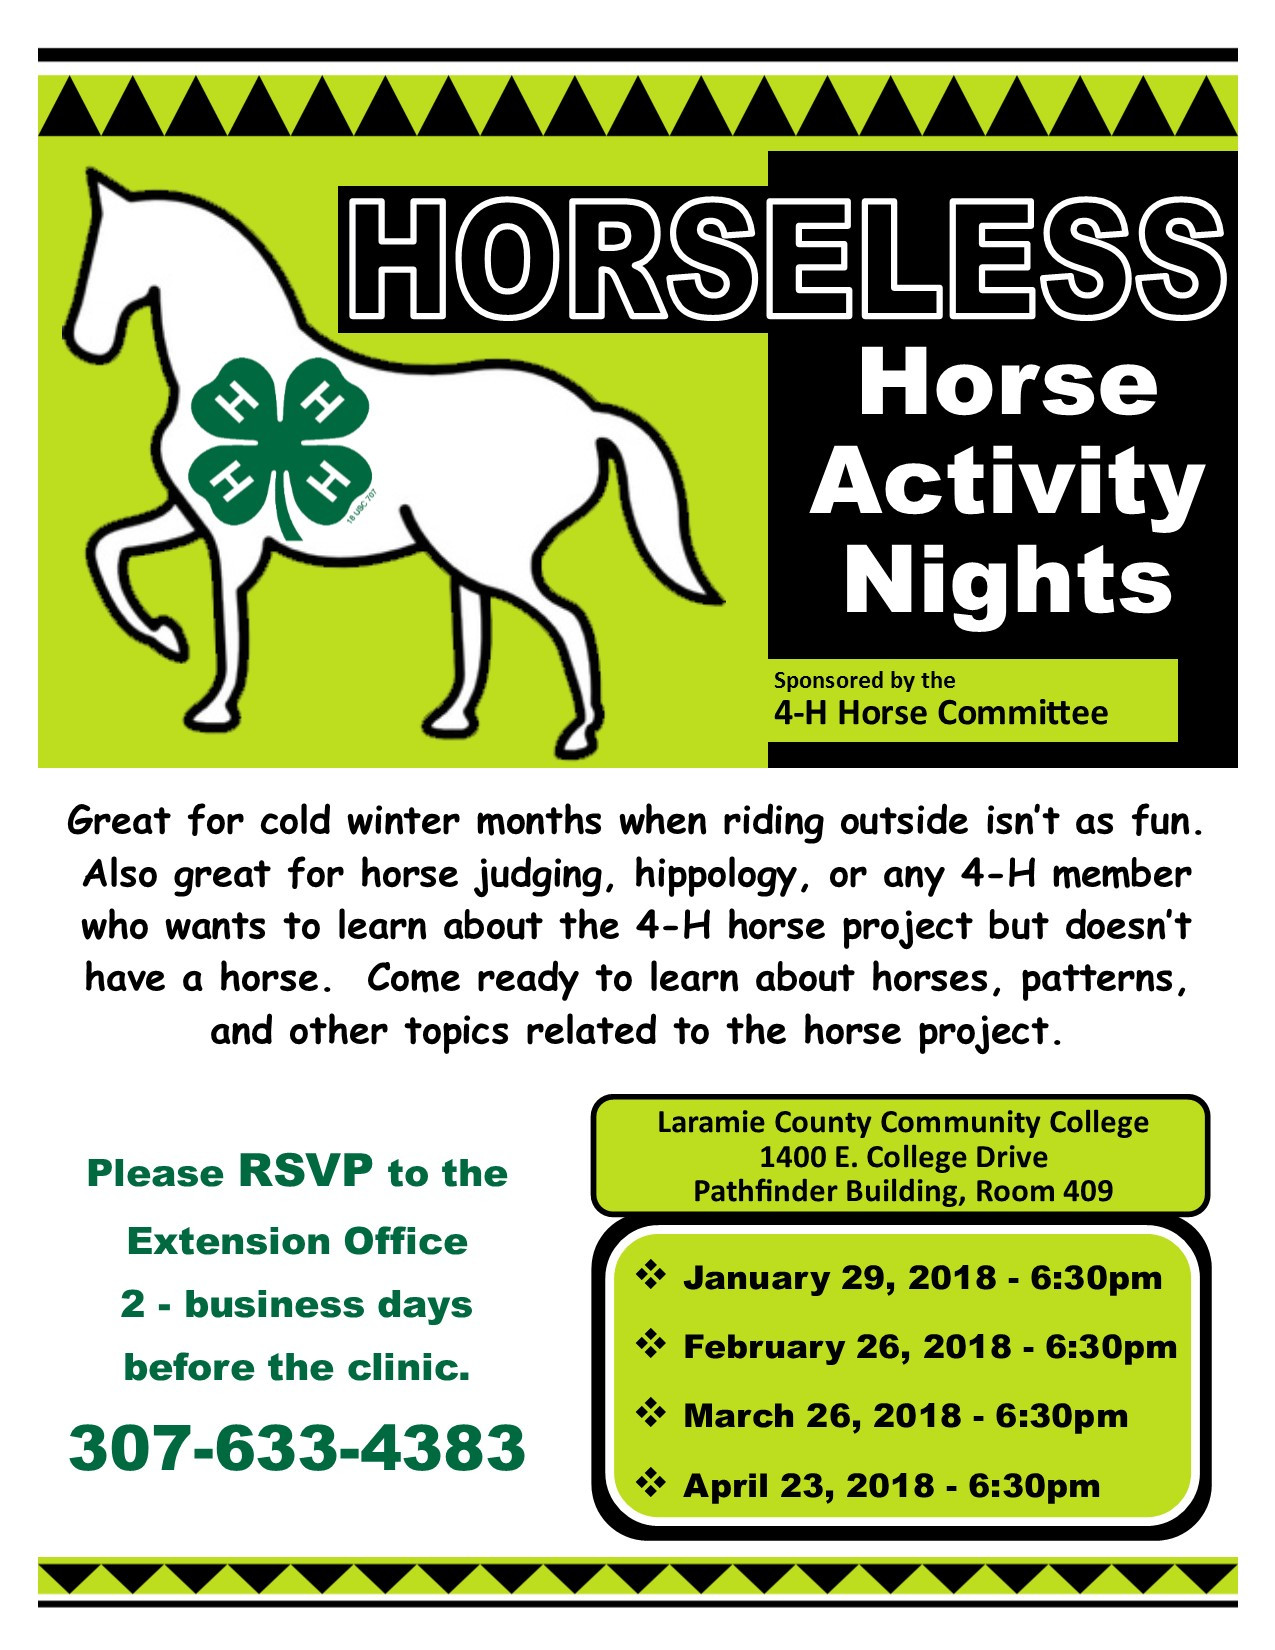 Horseless-Horse-Activity-Nights-Flyer-Template  H Newsletter Template on creating a newsletter template, knights of columbus newsletter template, events newsletter template, dance newsletter template, parent newsletter template, education newsletter template, art newsletter template, key club newsletter template, youth newsletter template, march preschool newsletter template, day care newsletter template, boy scouts newsletter template, soccer newsletter template, fun newsletter template, library newsletter template, basketball newsletter template, ffa newsletter template, school newsletter template, girl scouts newsletter template,